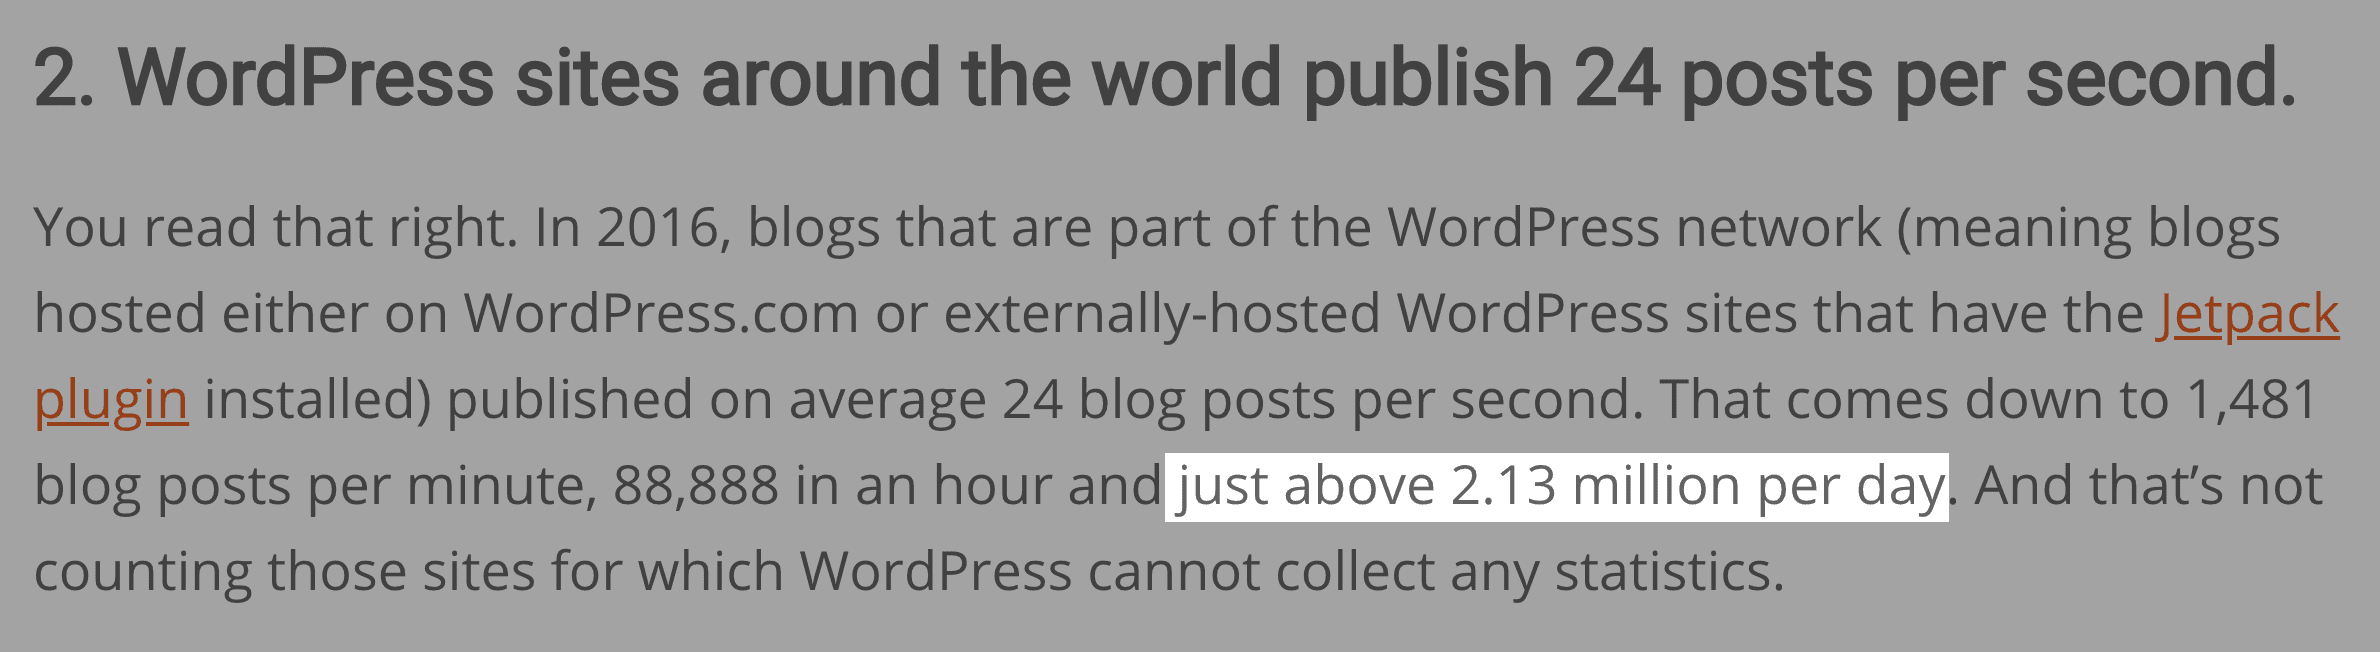 WordPress sites put out 2,000,000 posts every day